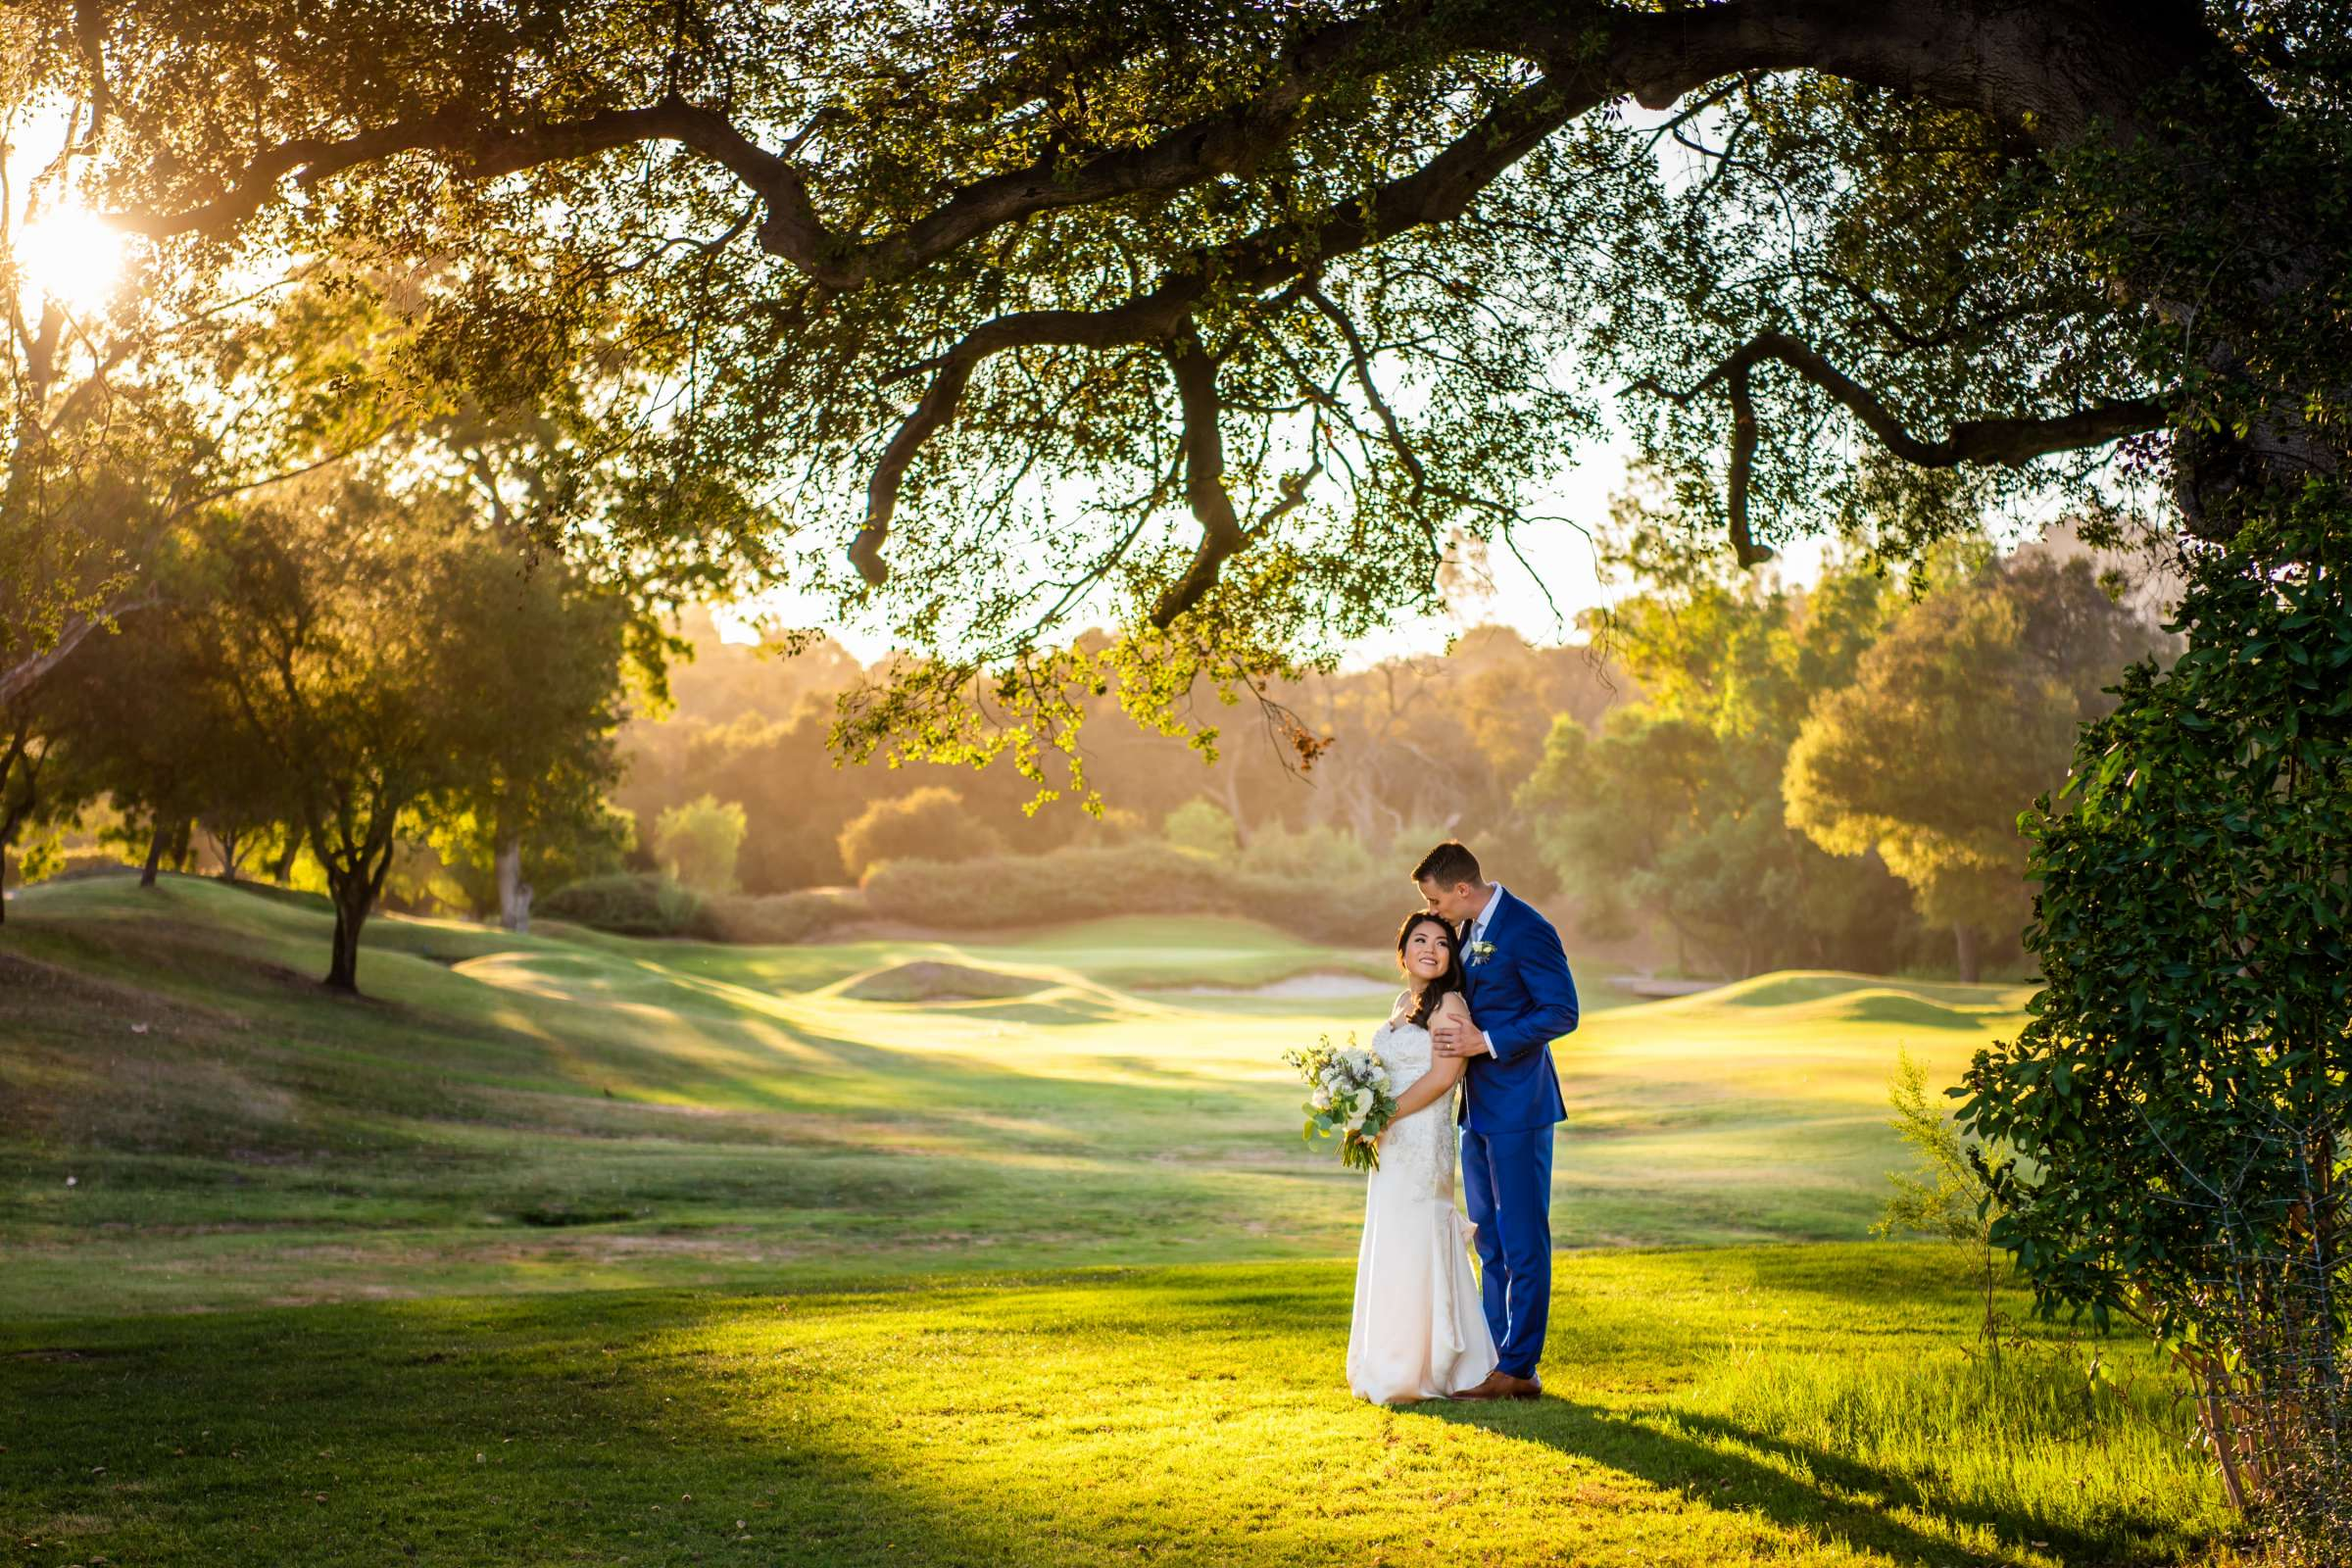 Mt Woodson Castle Wedding coordinated by I Do Weddings, Aya and Jared Wedding Photo #486862 by True Photography